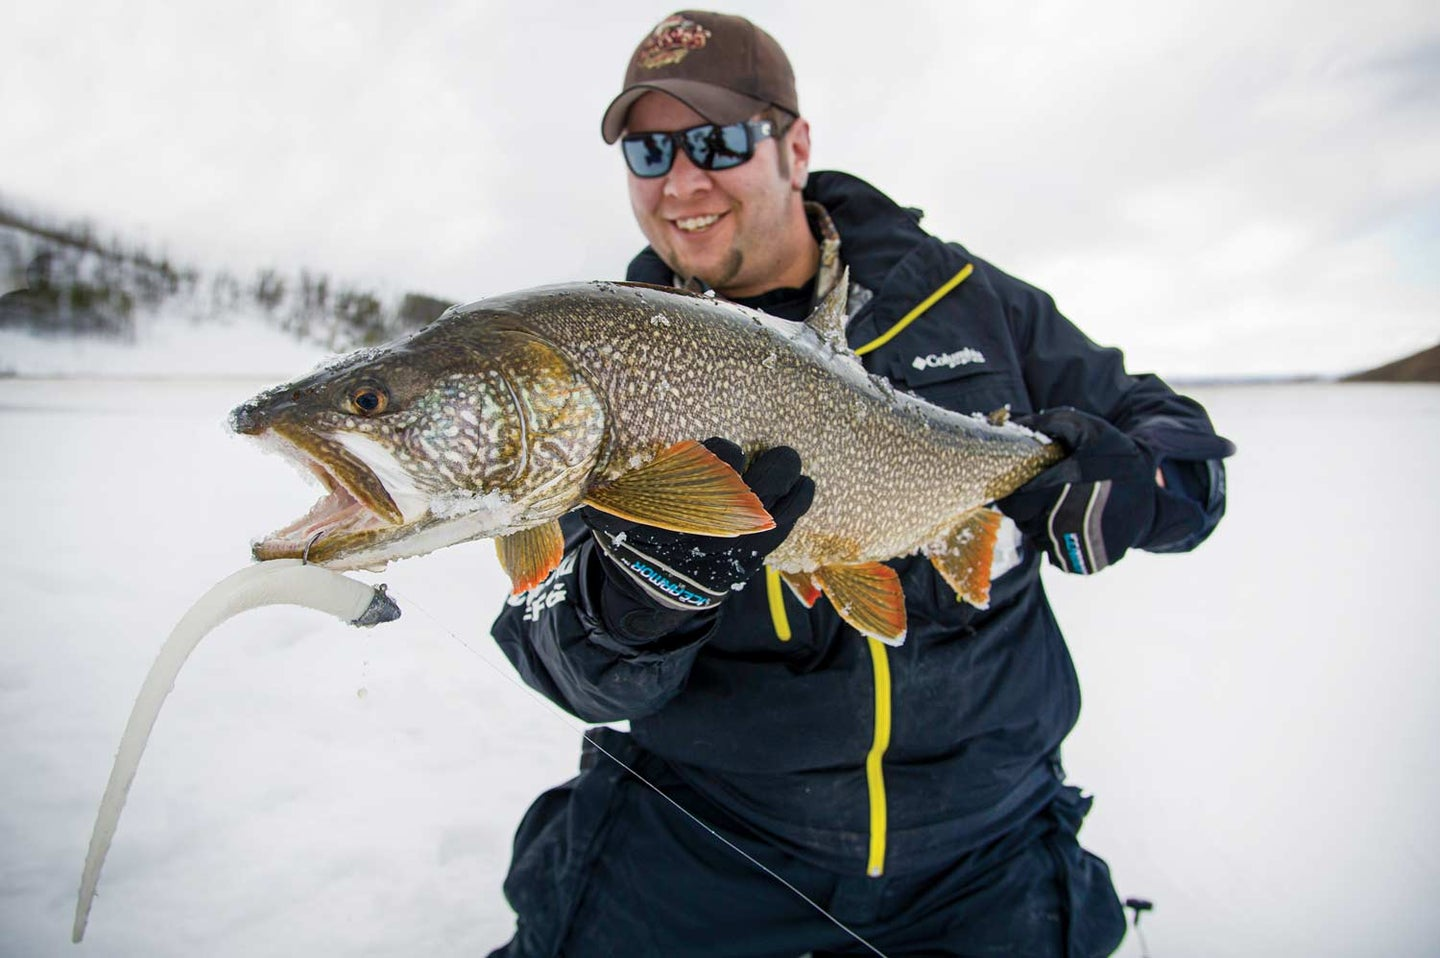 Joe Cermele with a heavy lake trout from Lake Granby in Colorado.